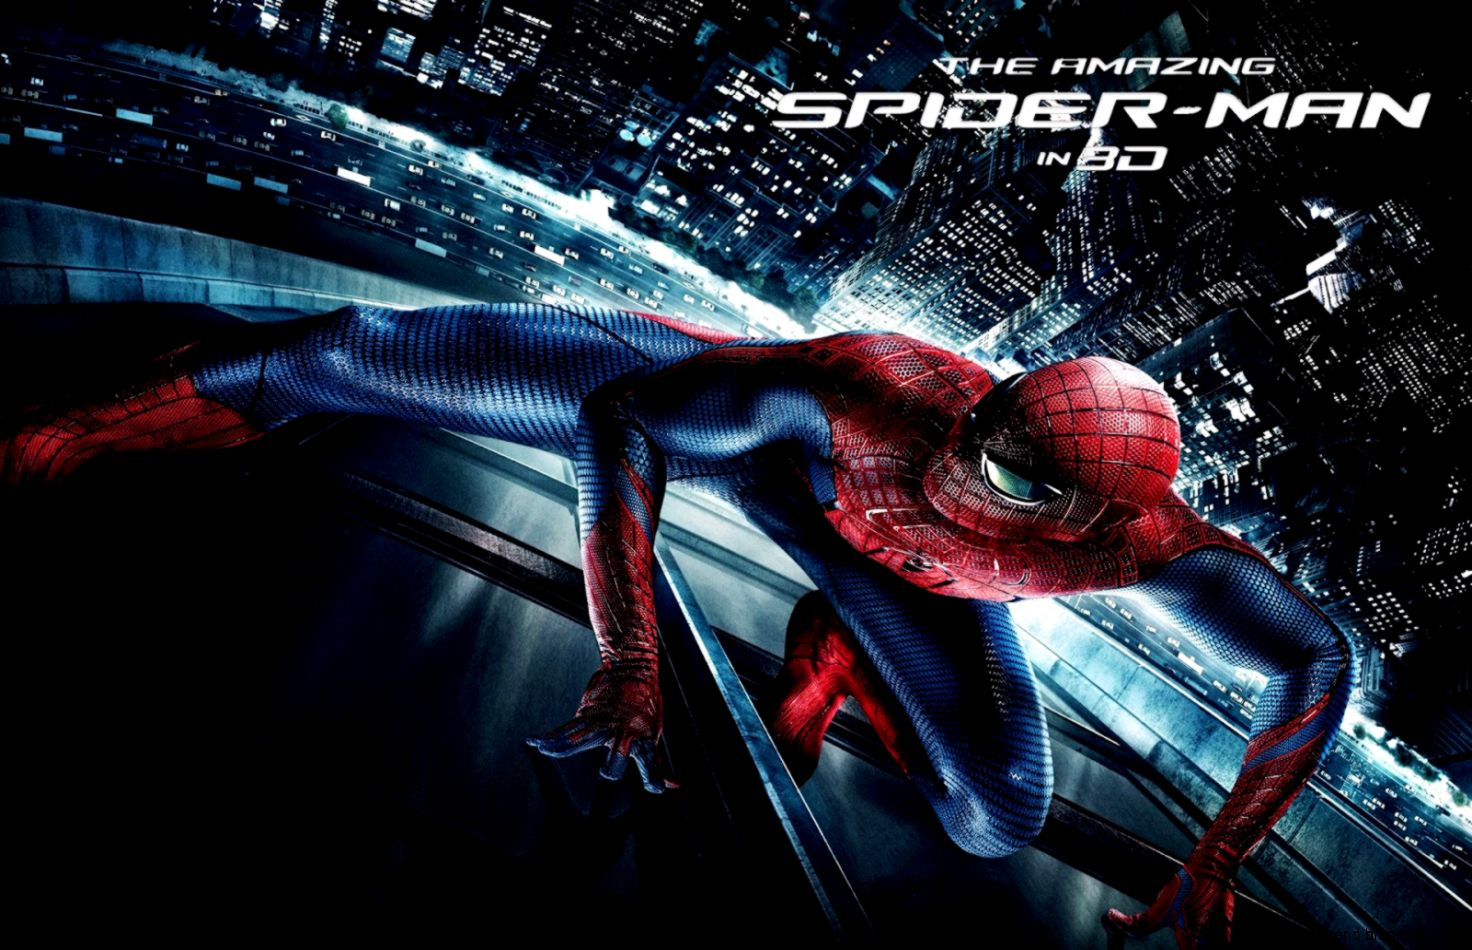 The Amazing Spider Man 2 Wallpaper Hd 1080P Gwen Stacy ...